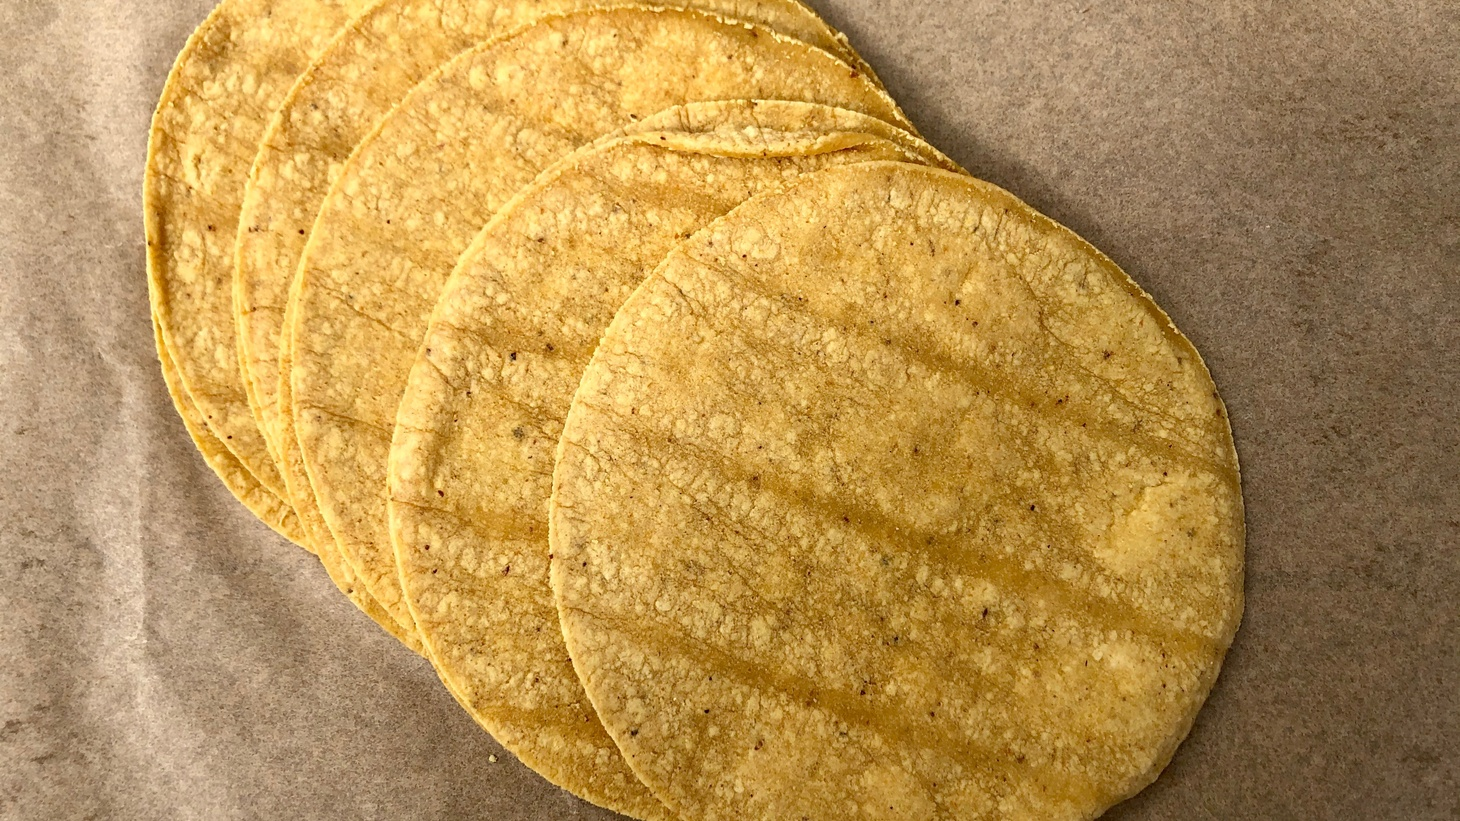 Tehachapi Heritage Grain Project tortillas, made by Kernel of Truth, are available at the Weiser Family Farm's stand at the Sunday Mar Vista Farmers Market.